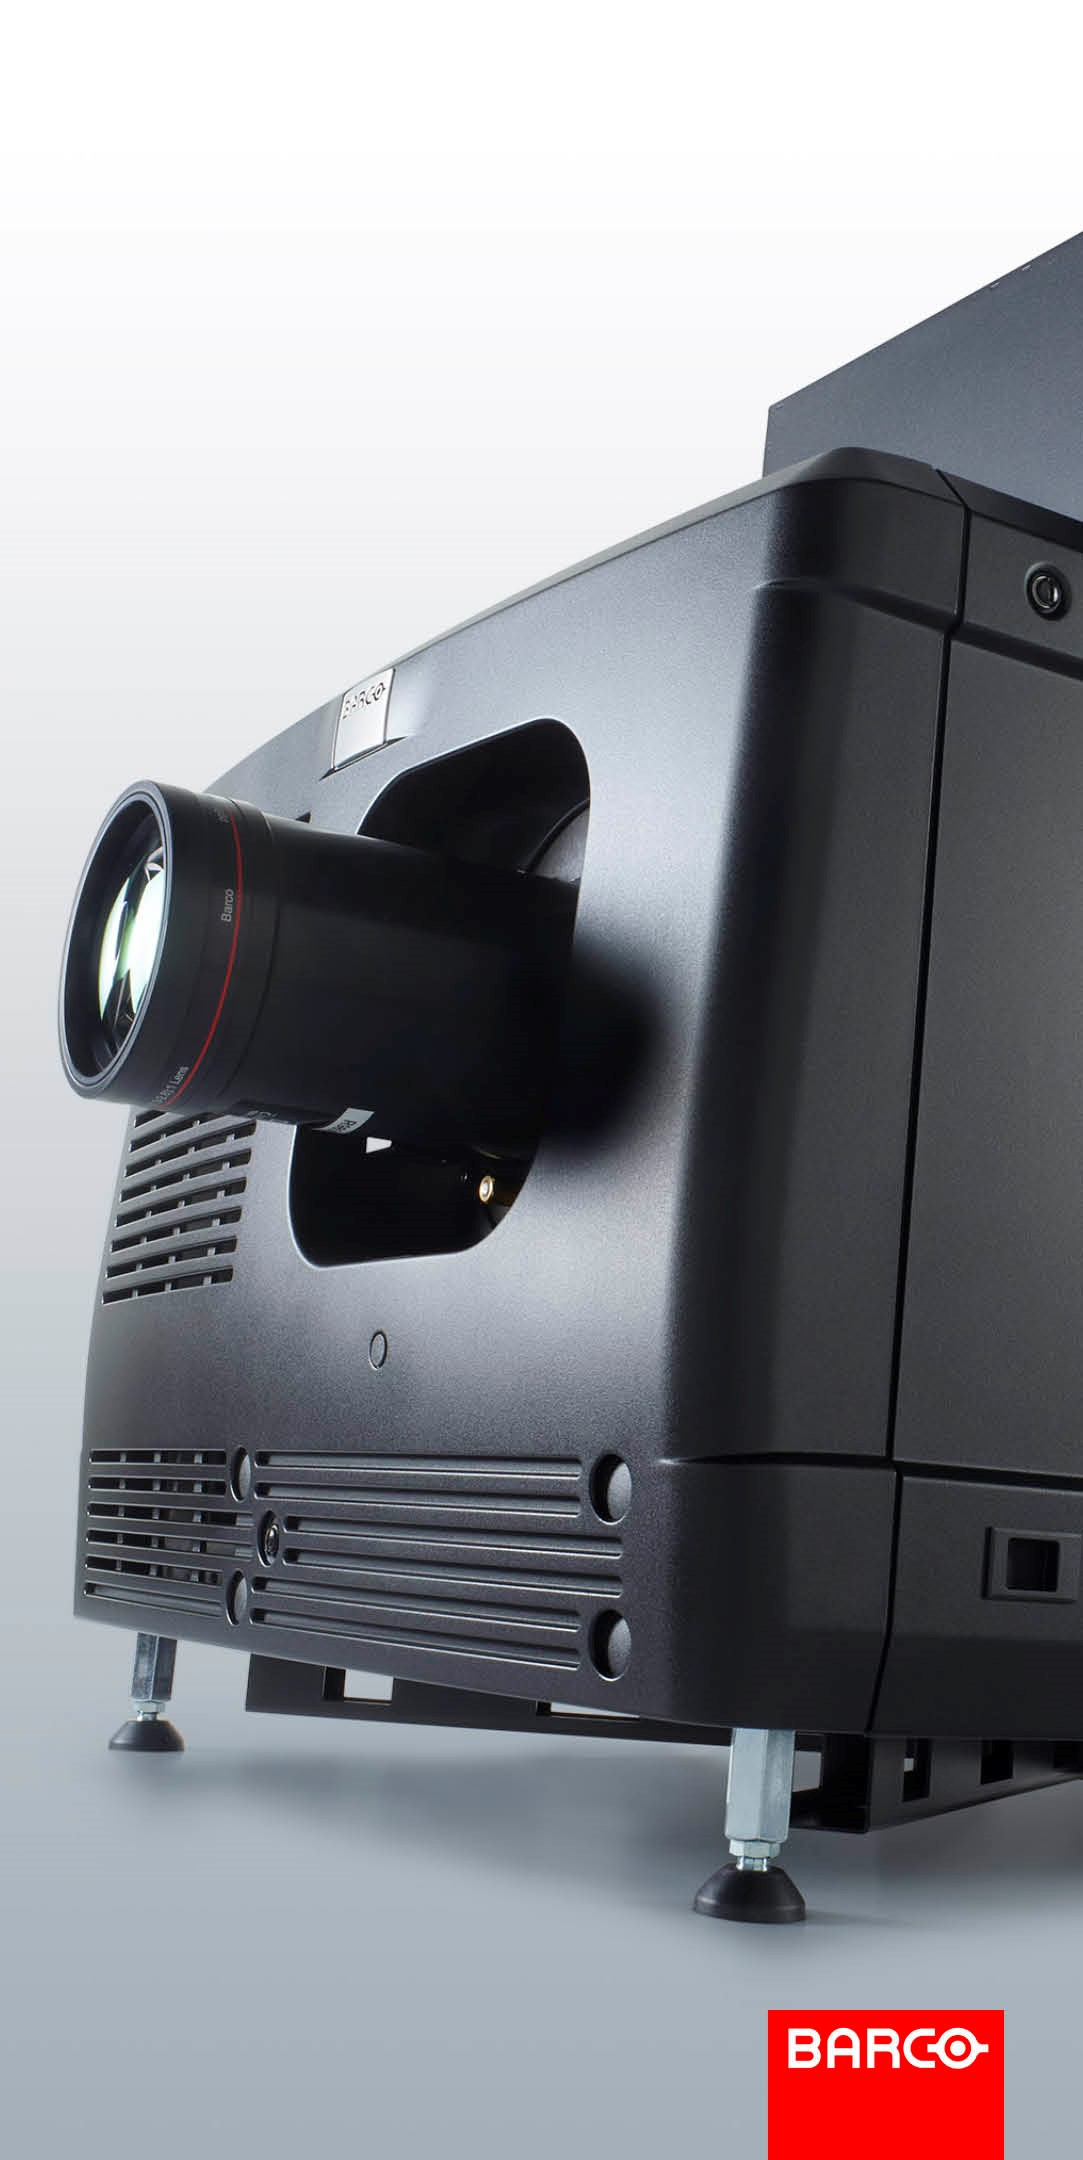 Cinionic | Cinionic launches industry-first High Contrast cinema laser projectors to power brilliant movie showings on smaller screens